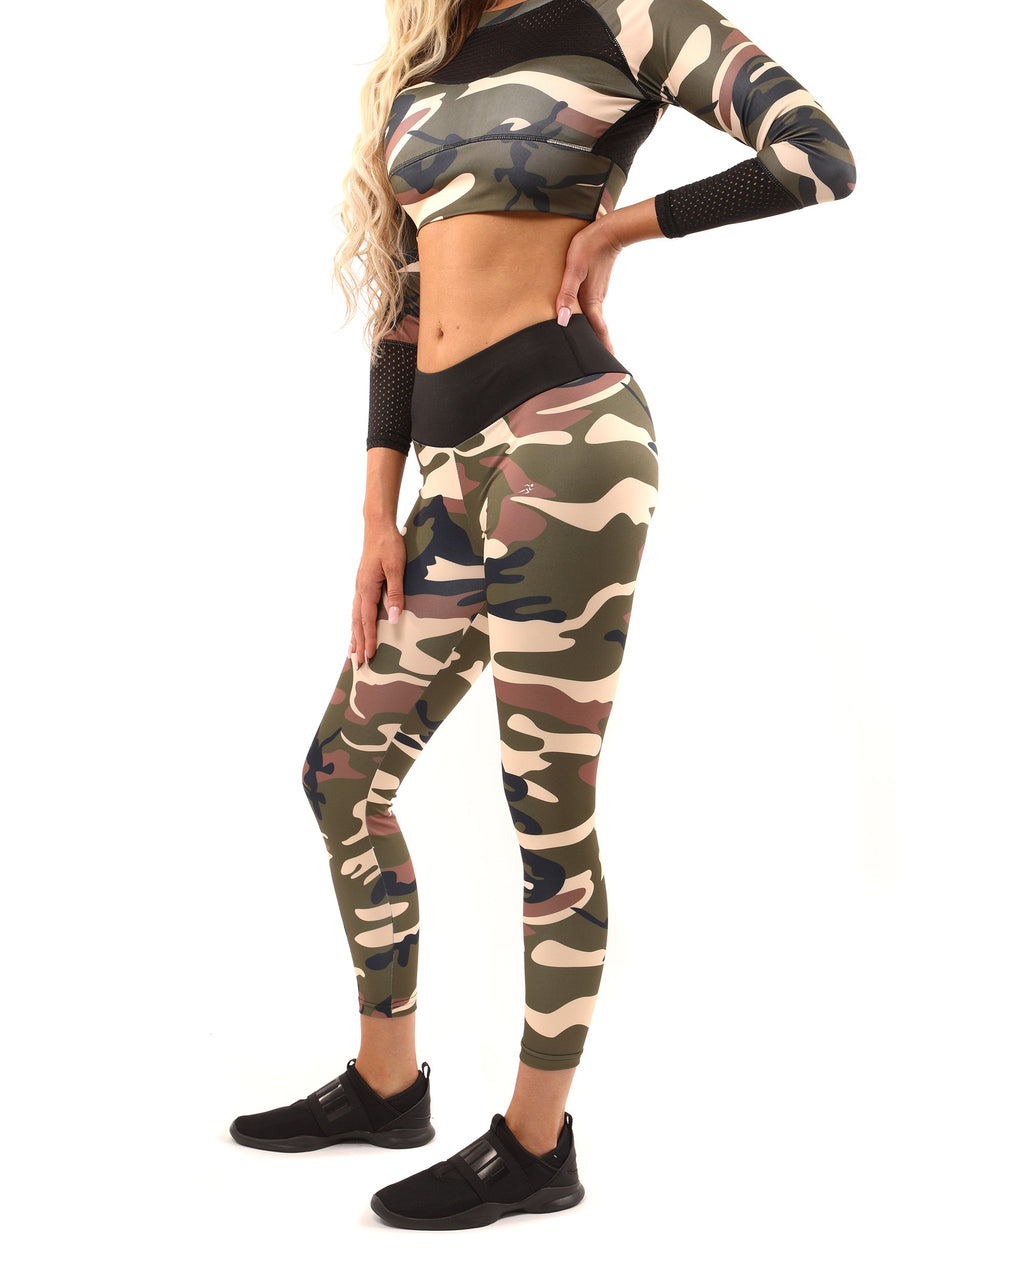 Virginia Camouflage Leggings - Brown/Green - KATANA FASHION BOUTIQUE